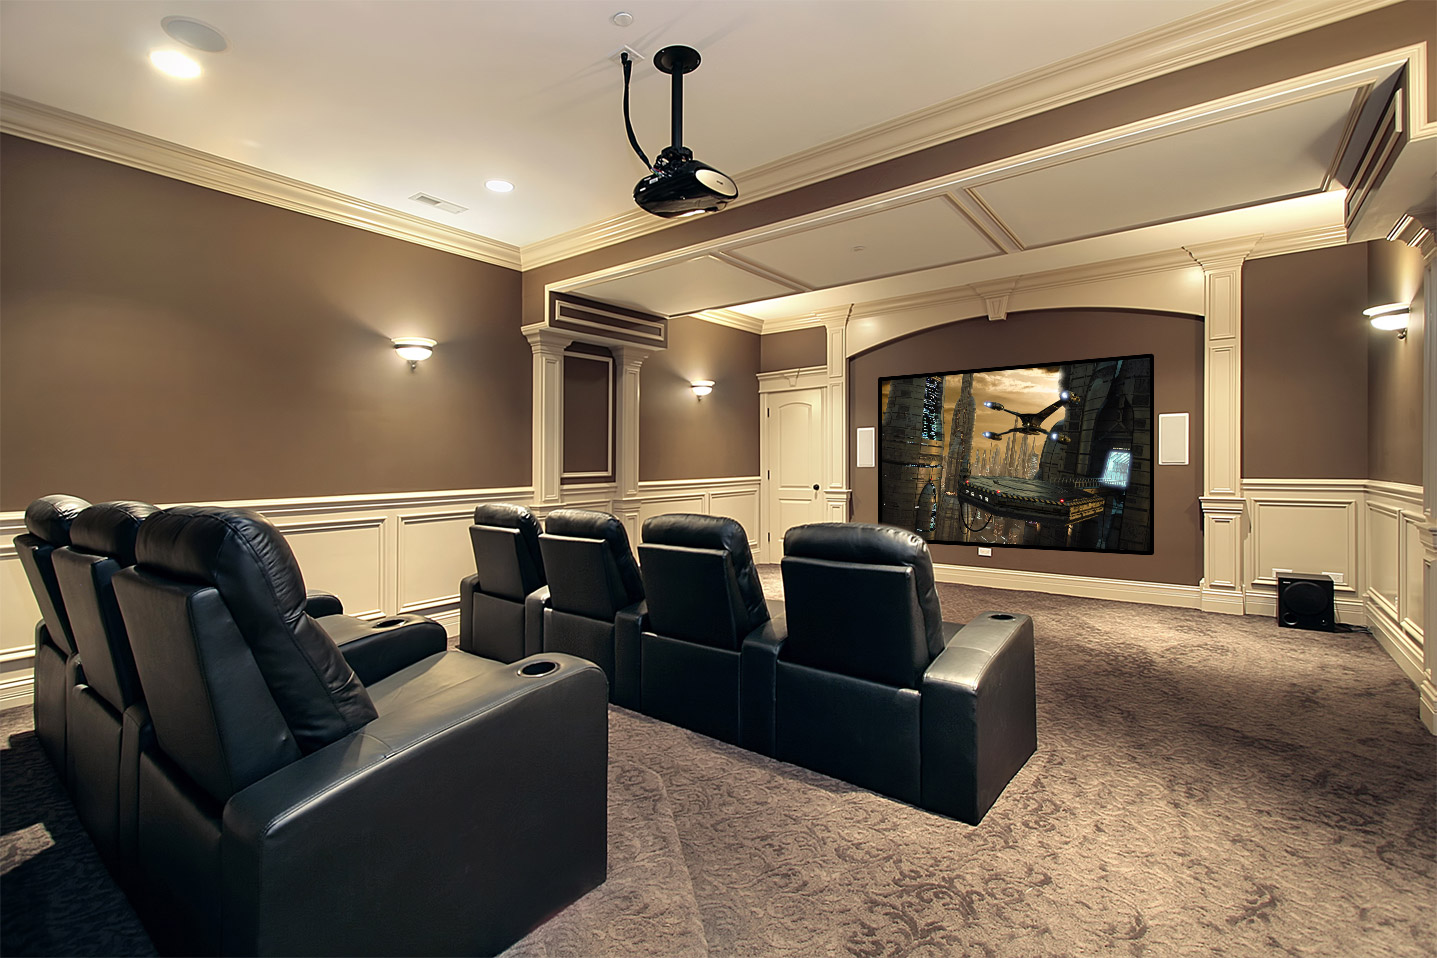 theatre room chairs parson chair slipcover home theater installation houston cinema installers